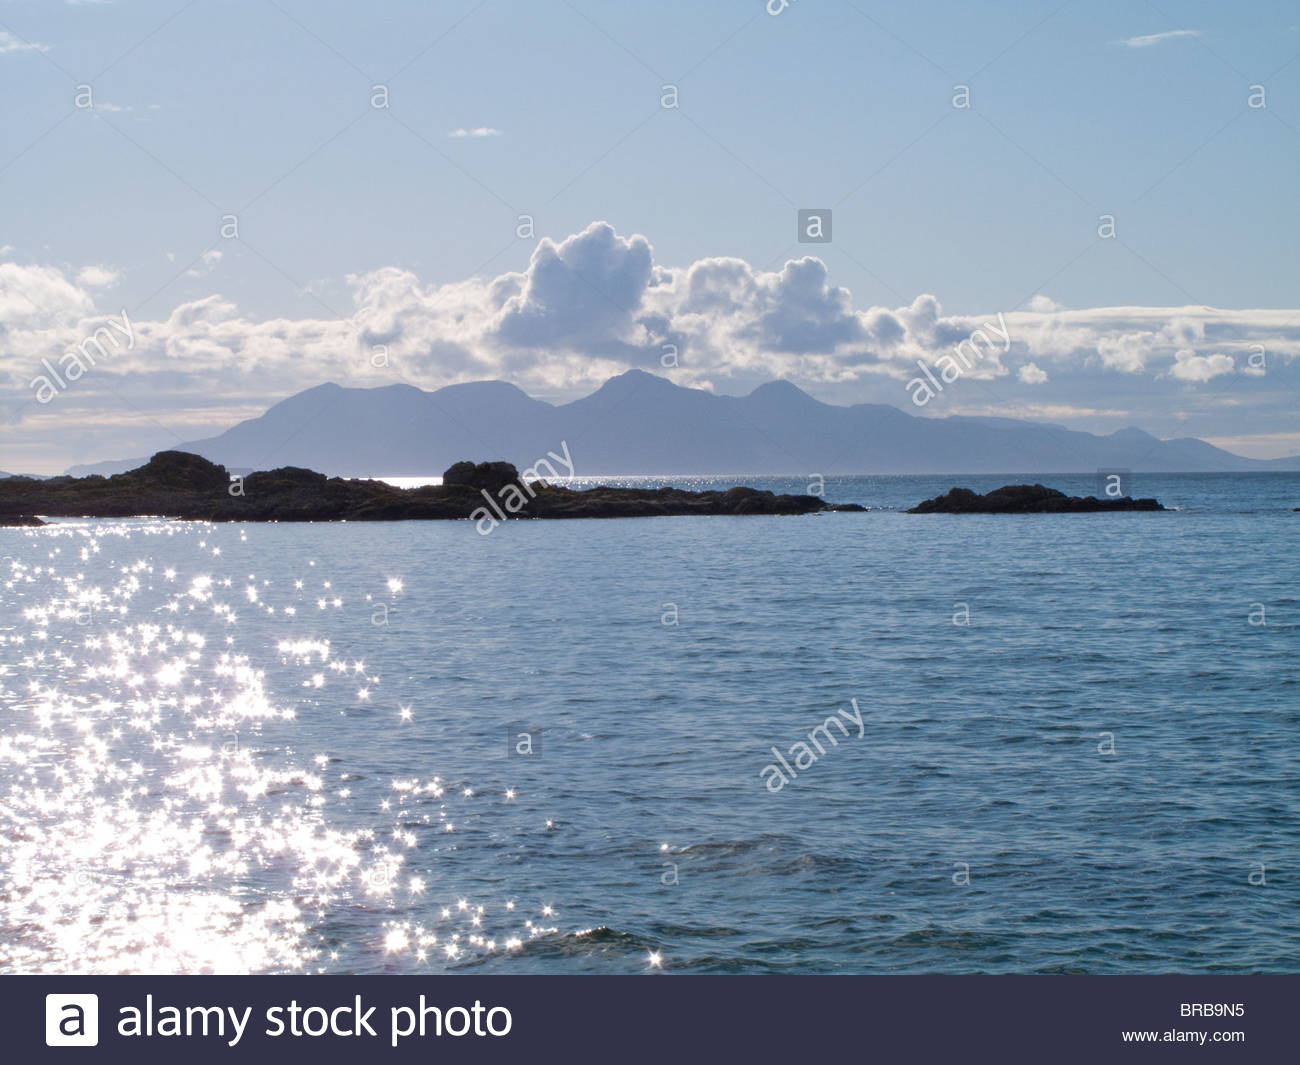 Rocks in tranquil ocean with mountain in background - Stock Image